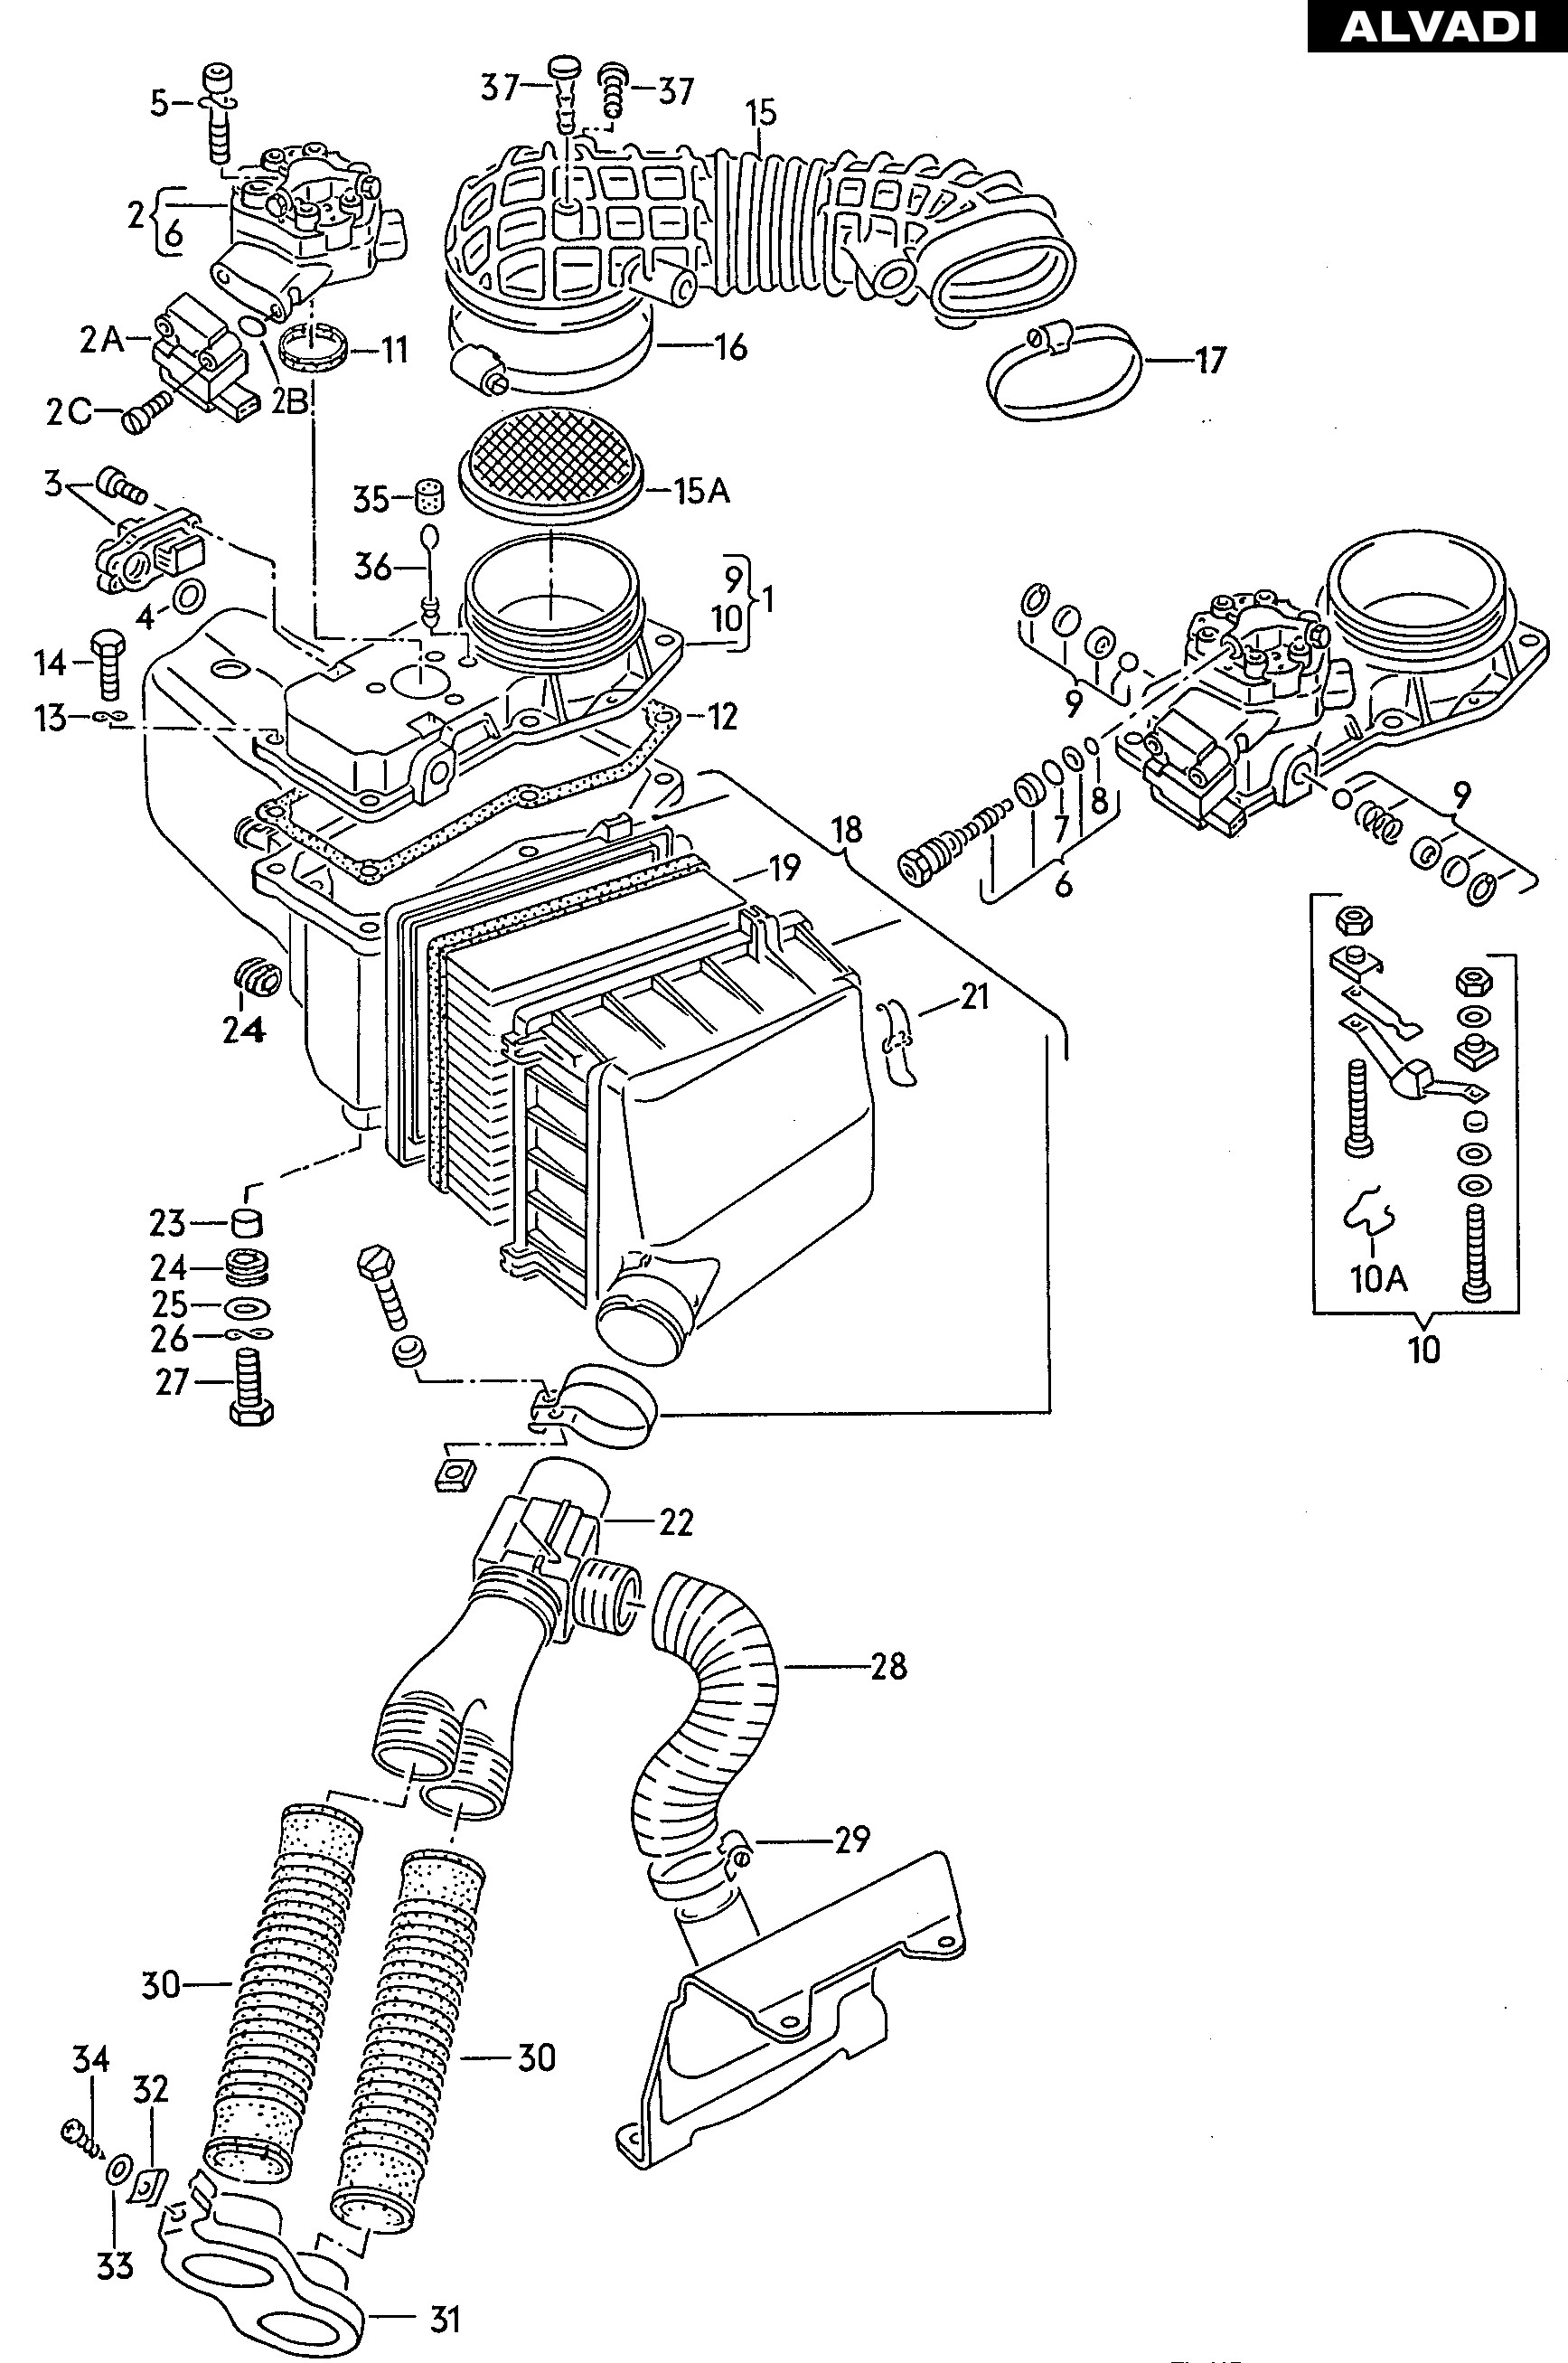 Car Radiator Parts Diagram Audi Mass Air Flow Sensor Fuel Metering Valve Air Cleaner with Of Car Radiator Parts Diagram Pin by Jimmiejanet Testellamwfz On What Does An Engine with Turbo